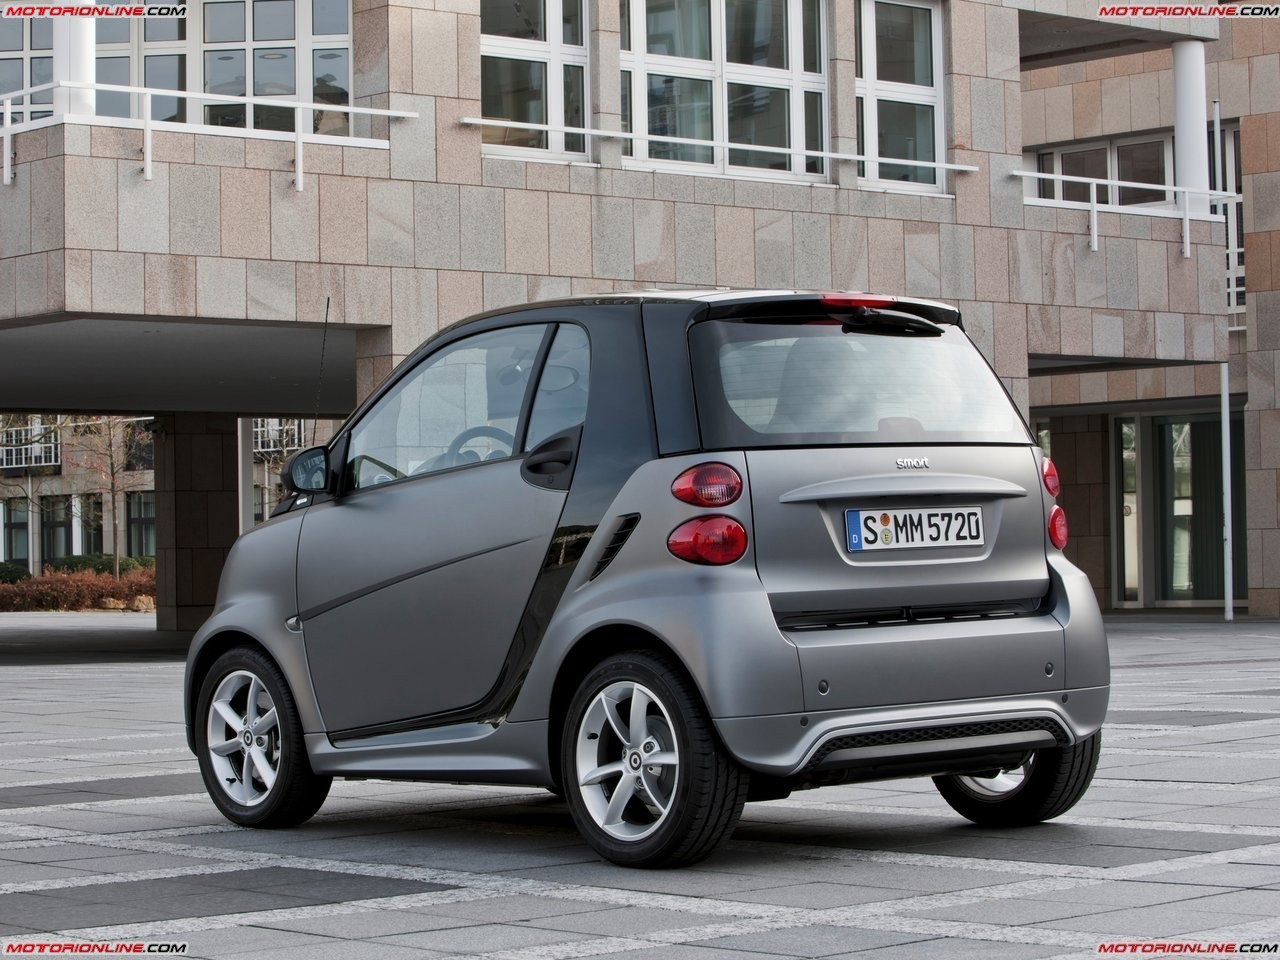 2013 Smart fortwo photo - 1